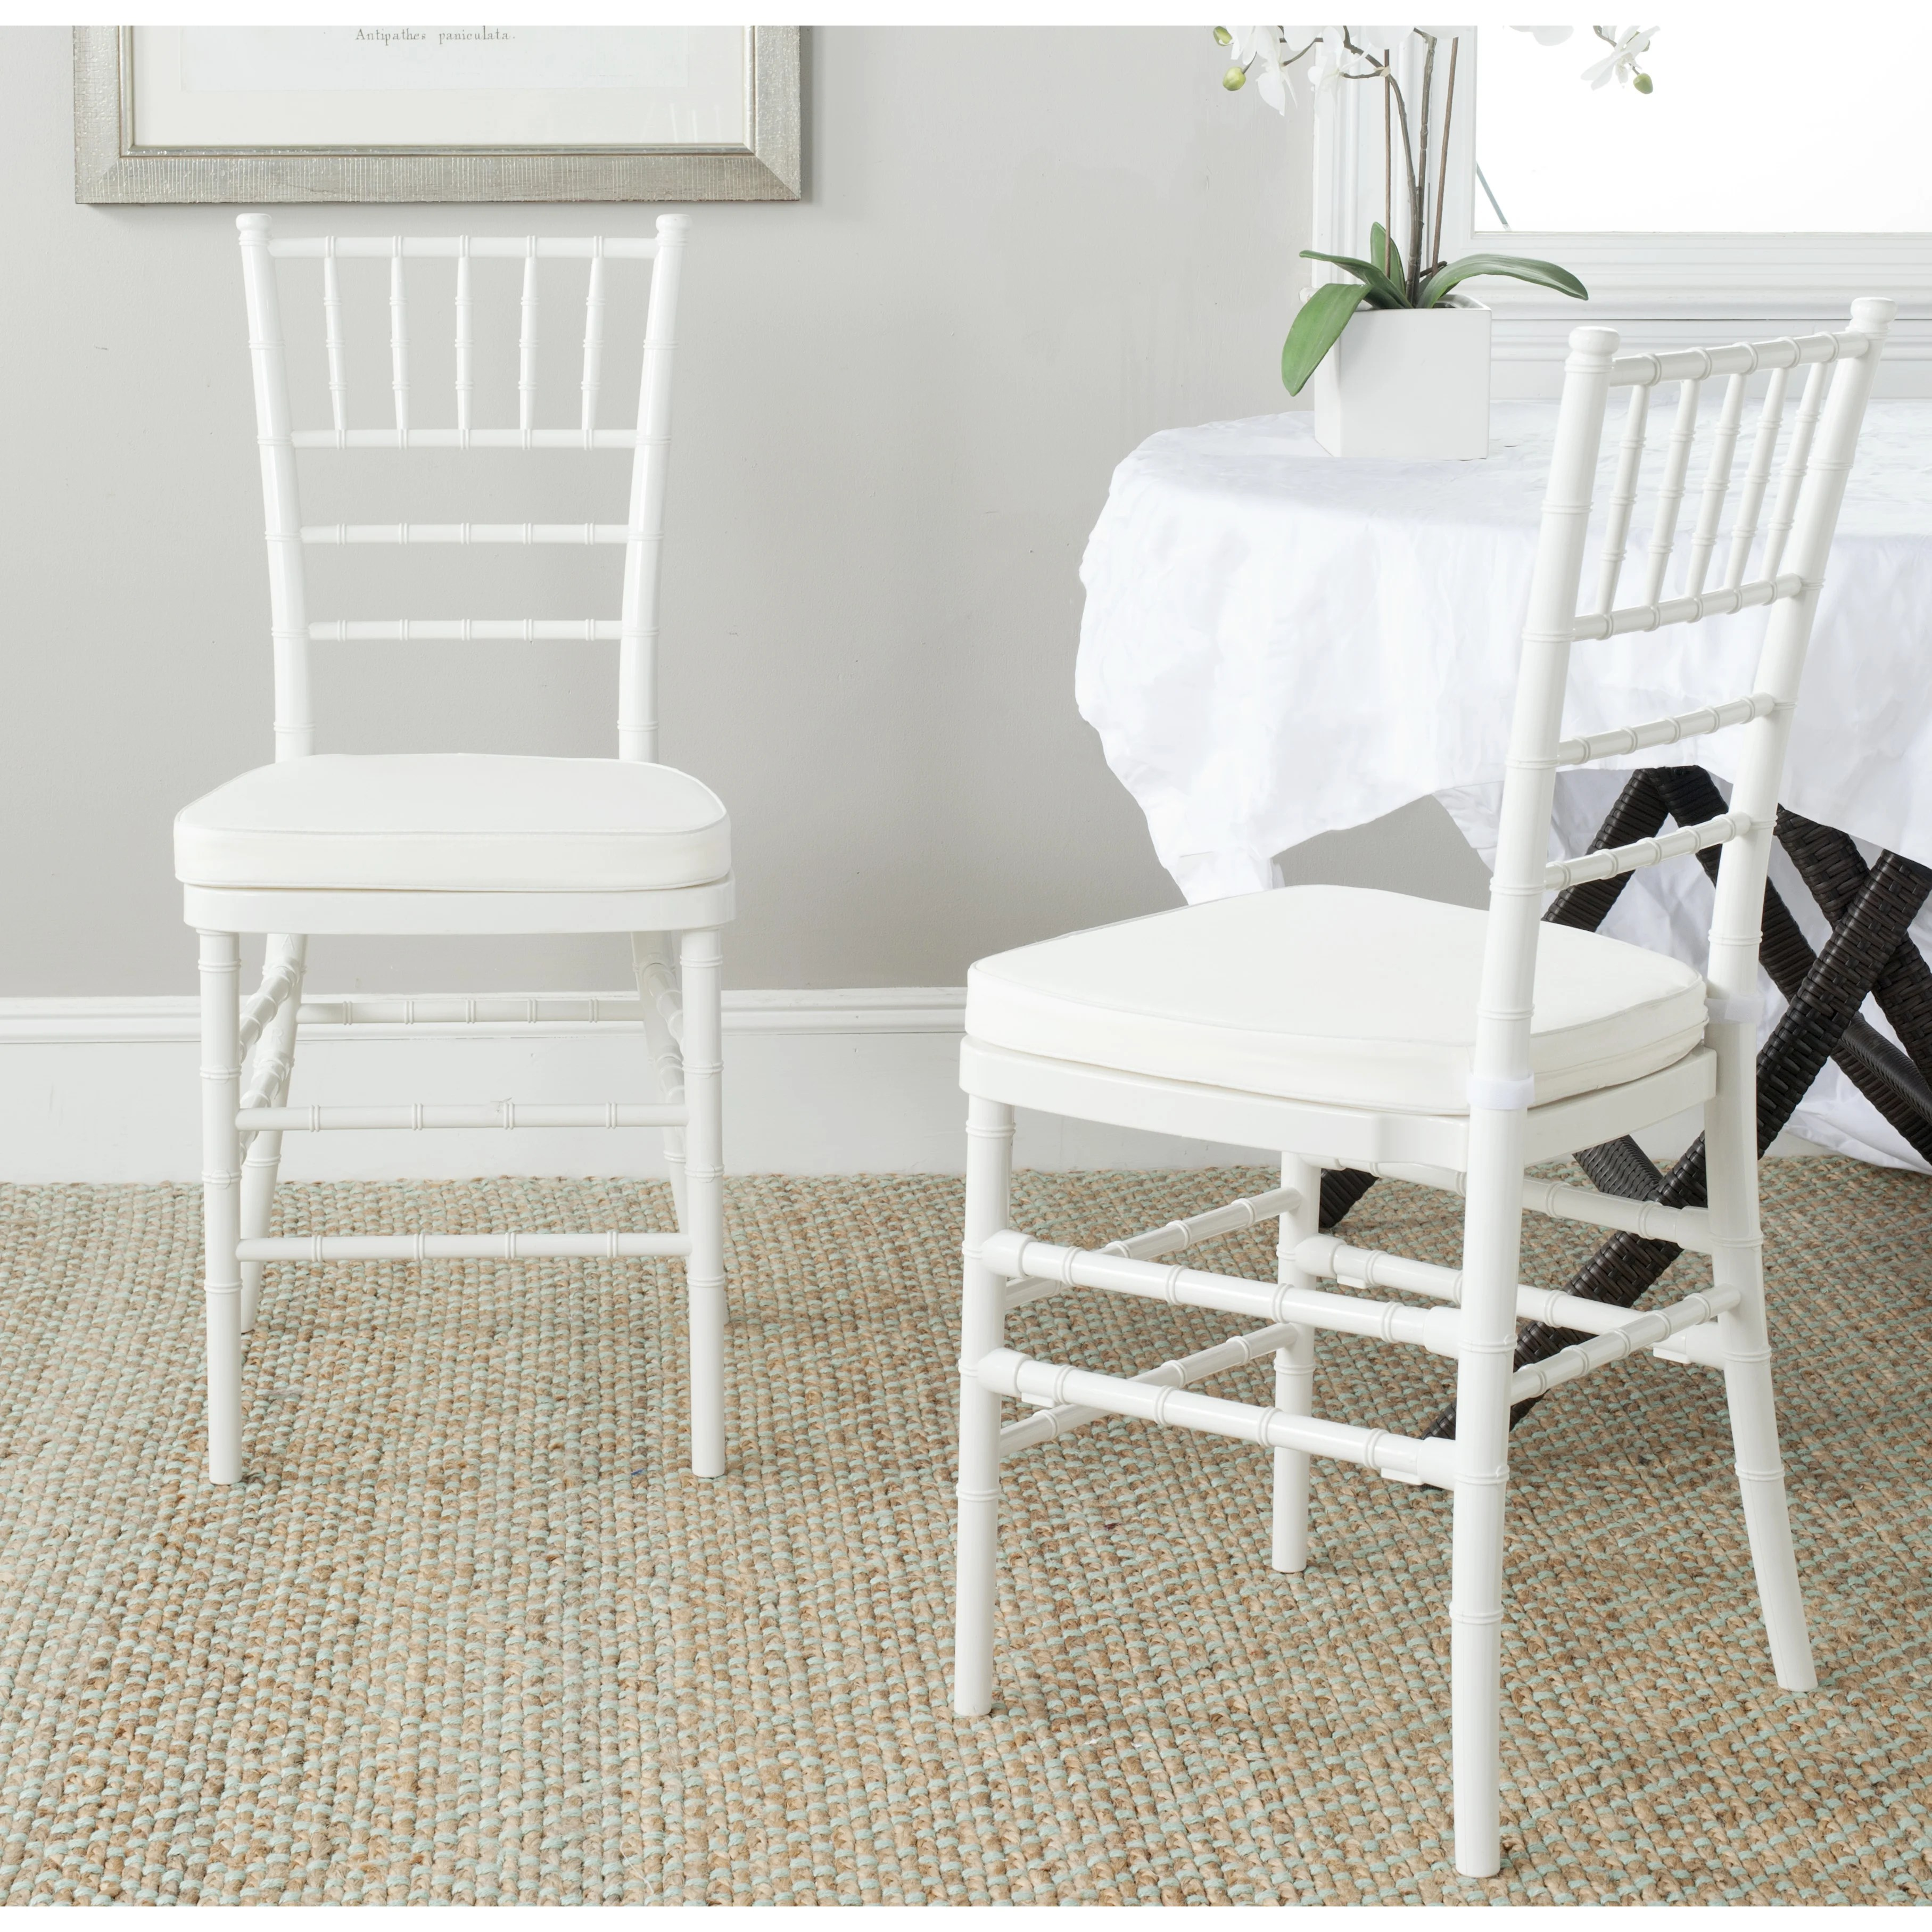 dorm chairs kohls chair covers designs safavieh courtyard side and reviews wayfair